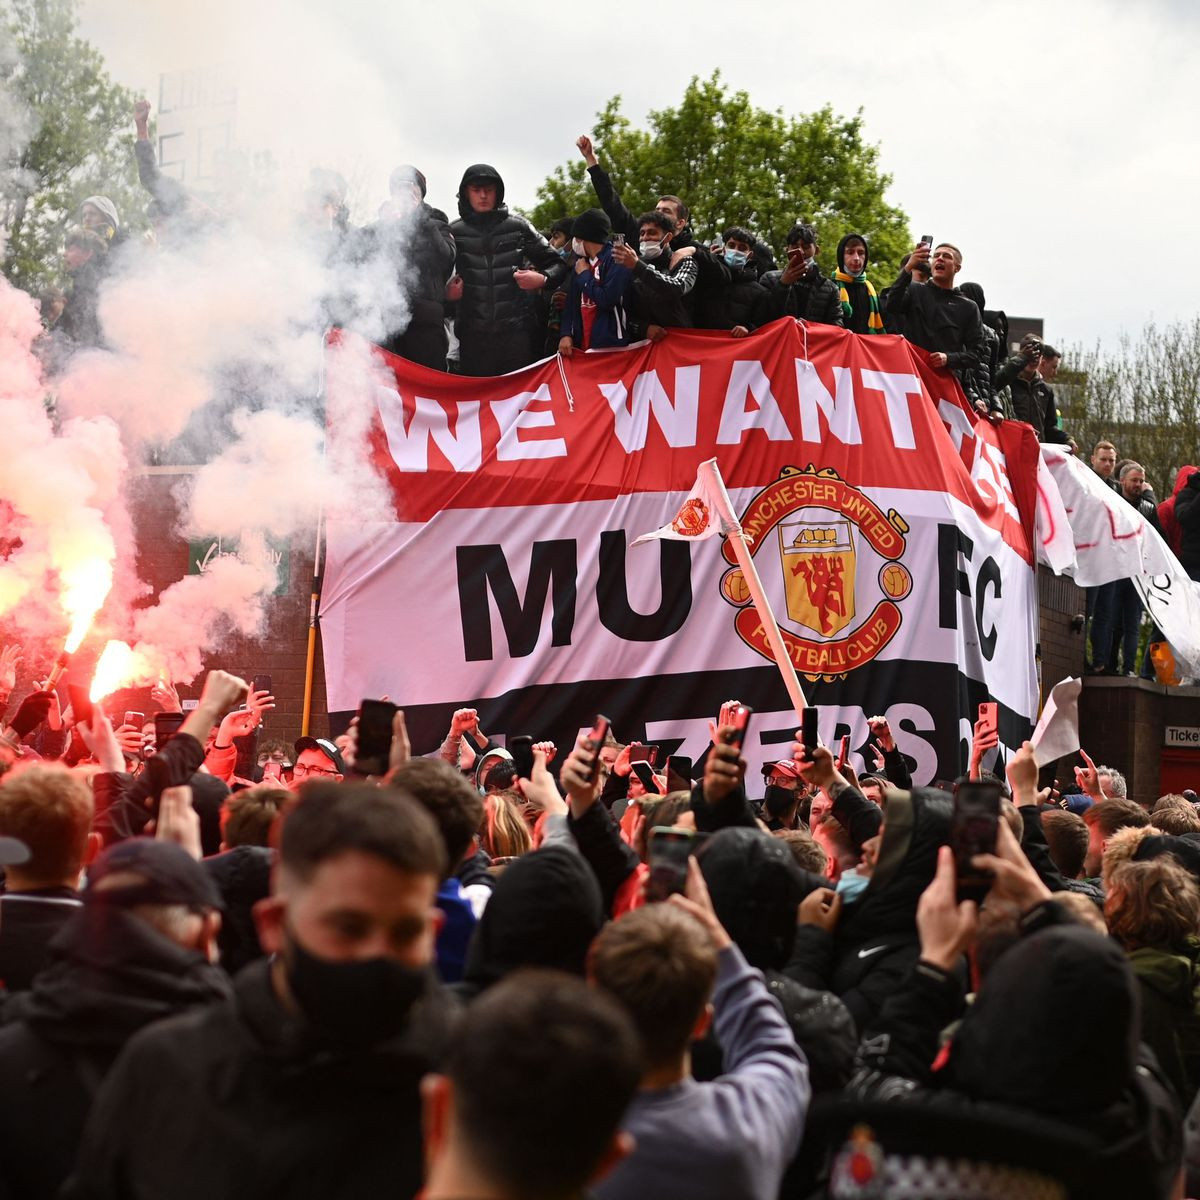 Manchester United could face a points deduction and hefty fine that saw Liverpool clash postponed?